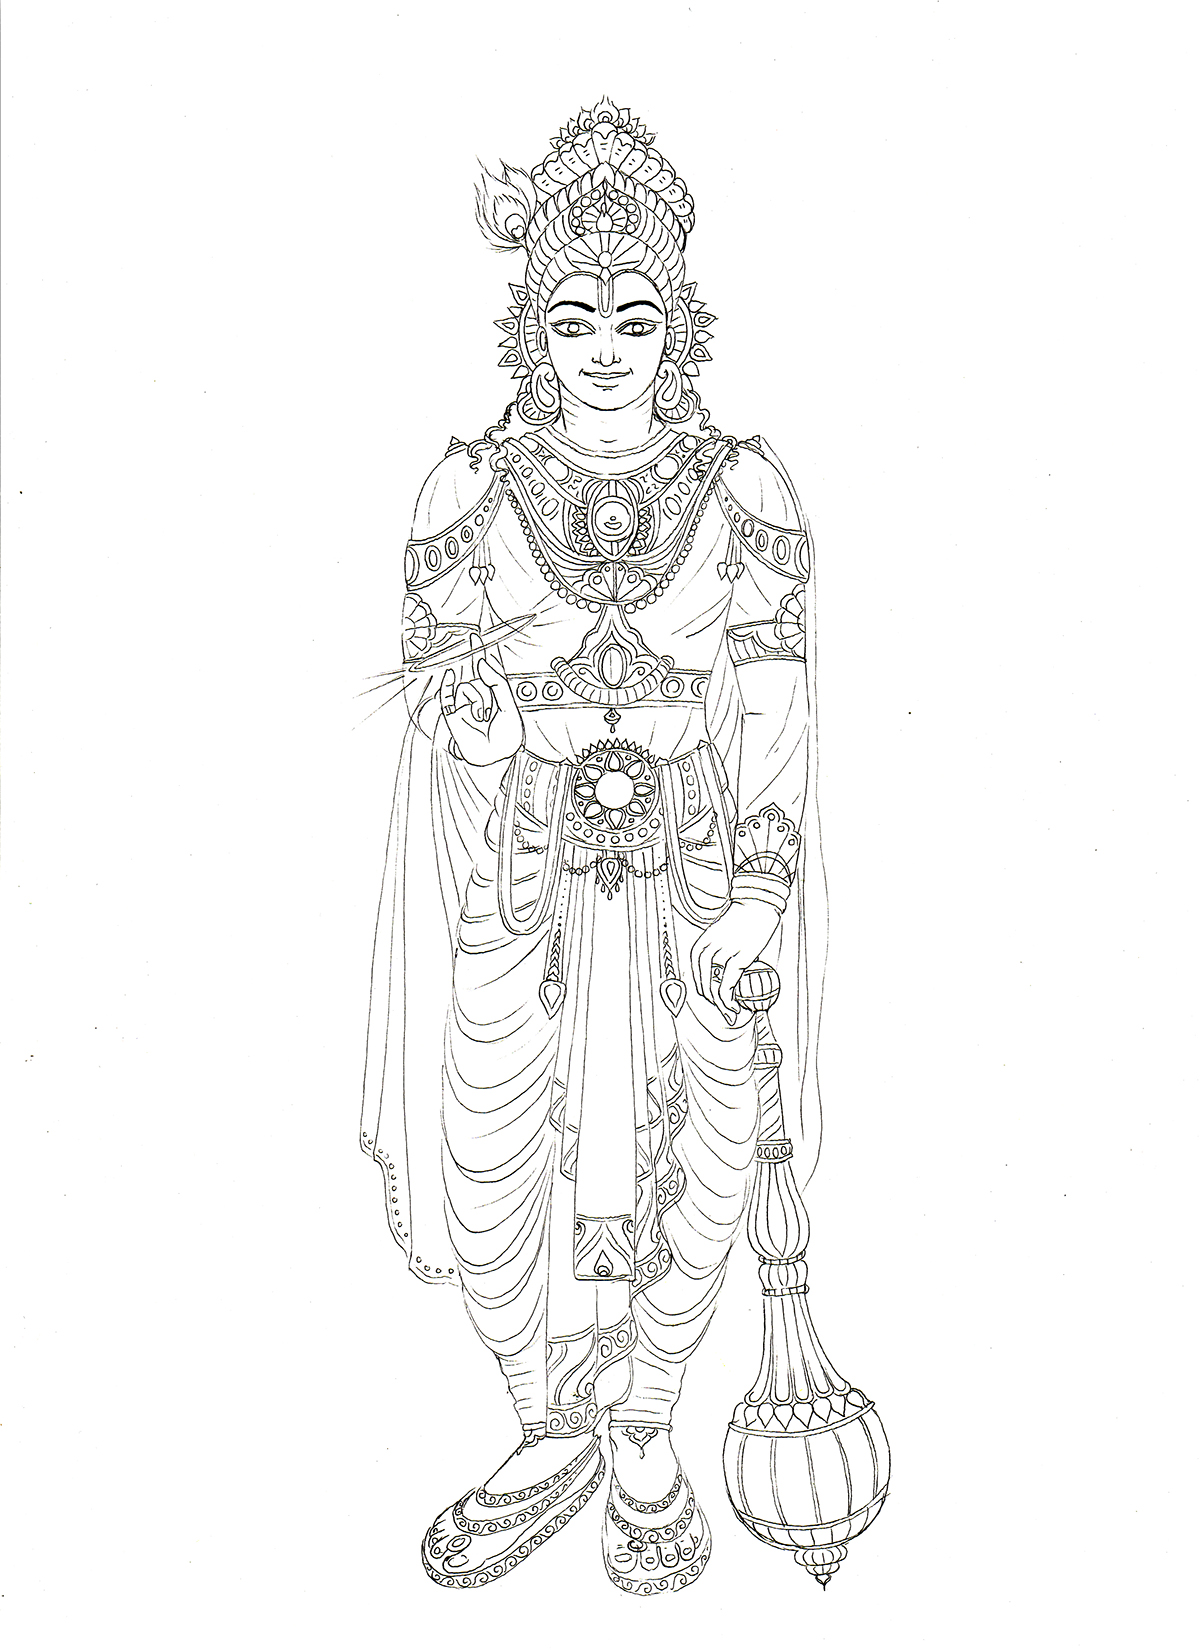 245 75 16 >> Mahabharata characters (drawings for colouring book) on ...